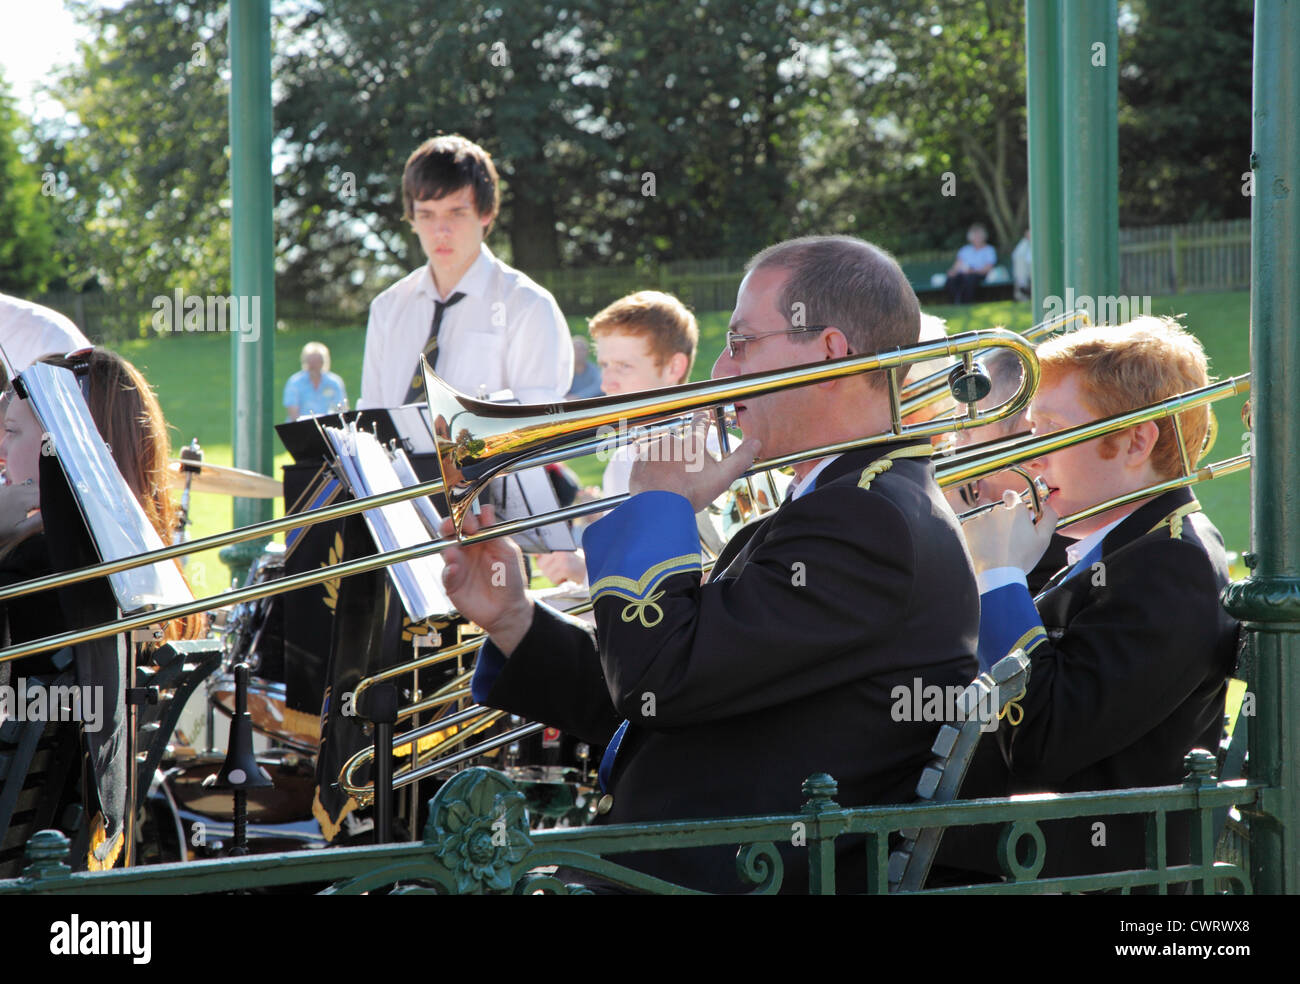 Musicians,from Annan Town Band, playing trombones within the bandstand at Beamish Museum, north east England, UK - Stock Image